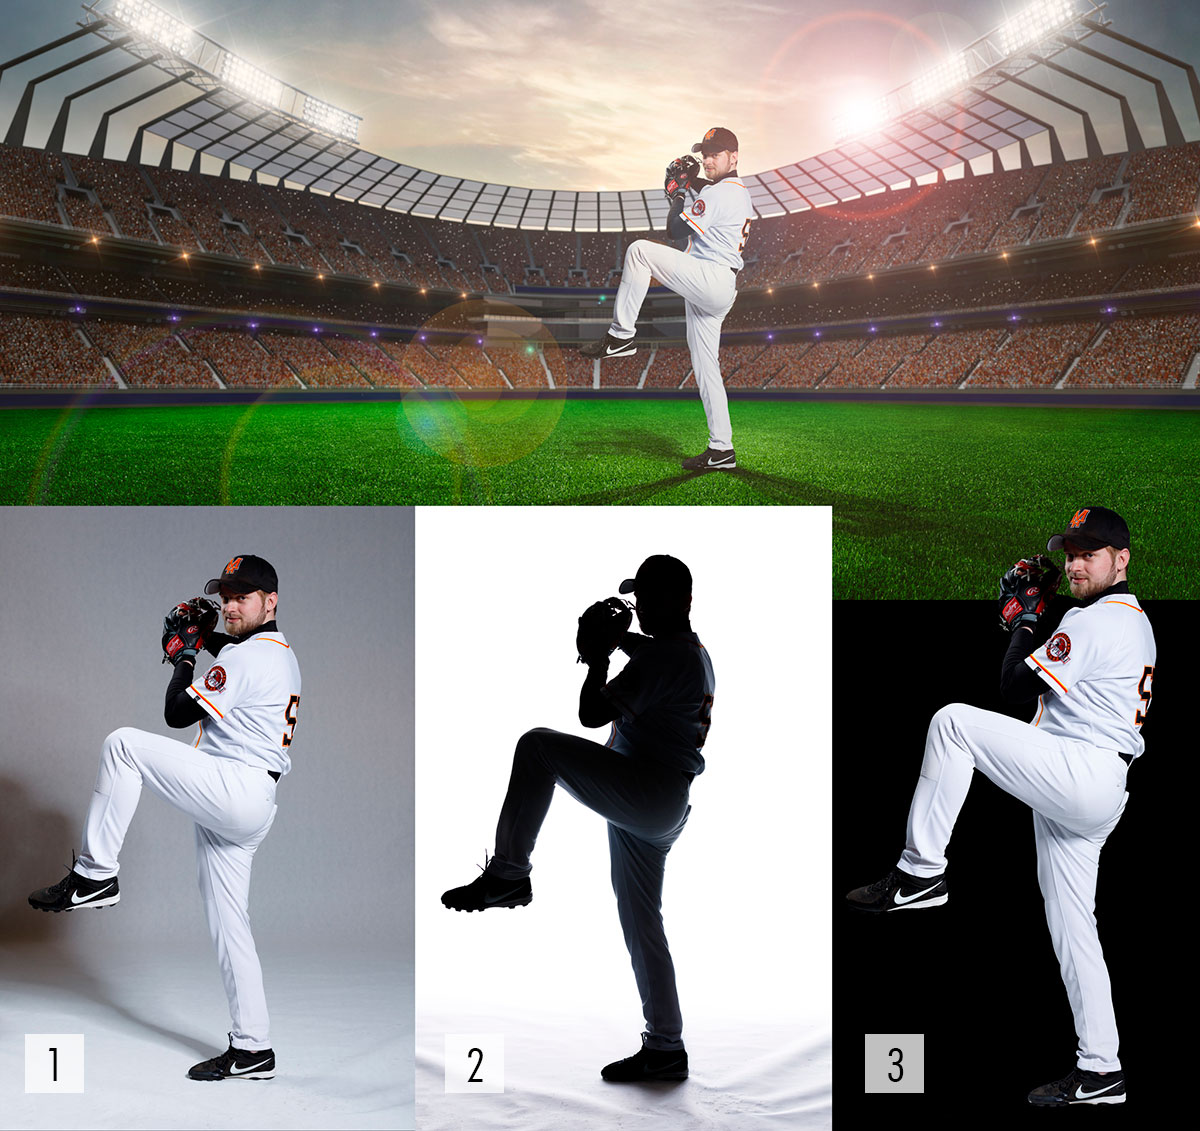 Baseball Composing by Alexey Dovgulya